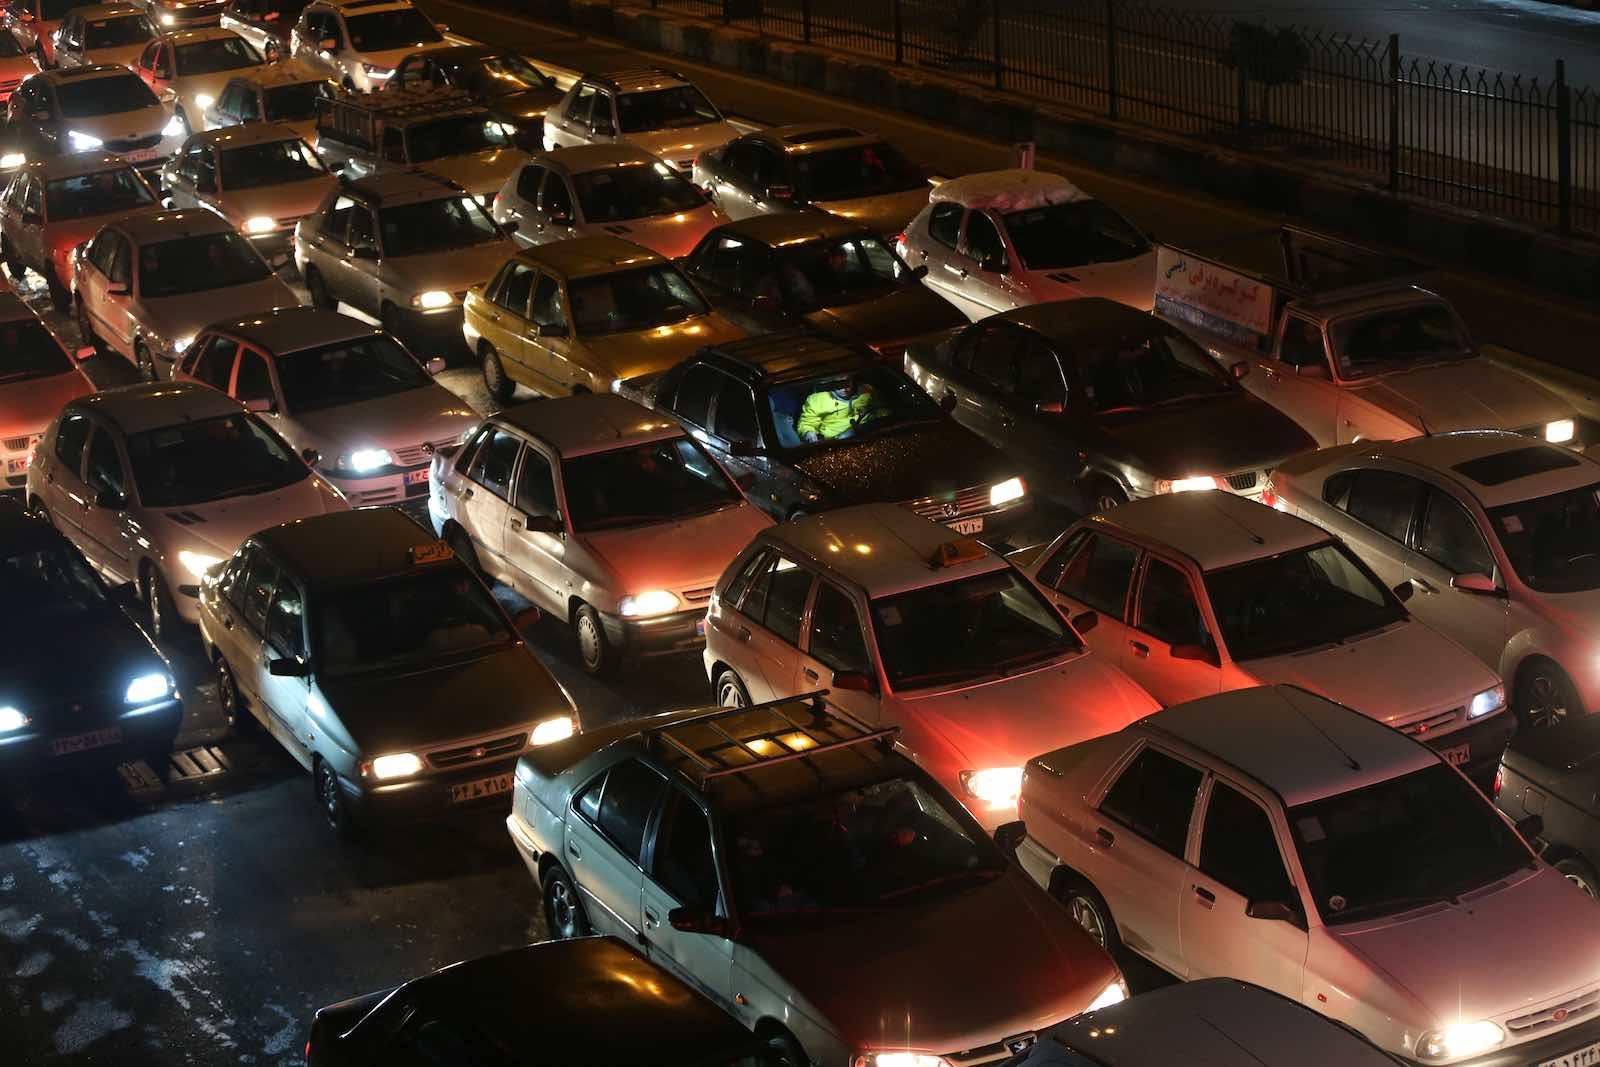 Drivers in Tehran switch off engines to block roads during a demonstration against a government decision to raise petrol prices, 16 November (Photo: Fatemeh Bahrami/Anadolu Agency via Getty)